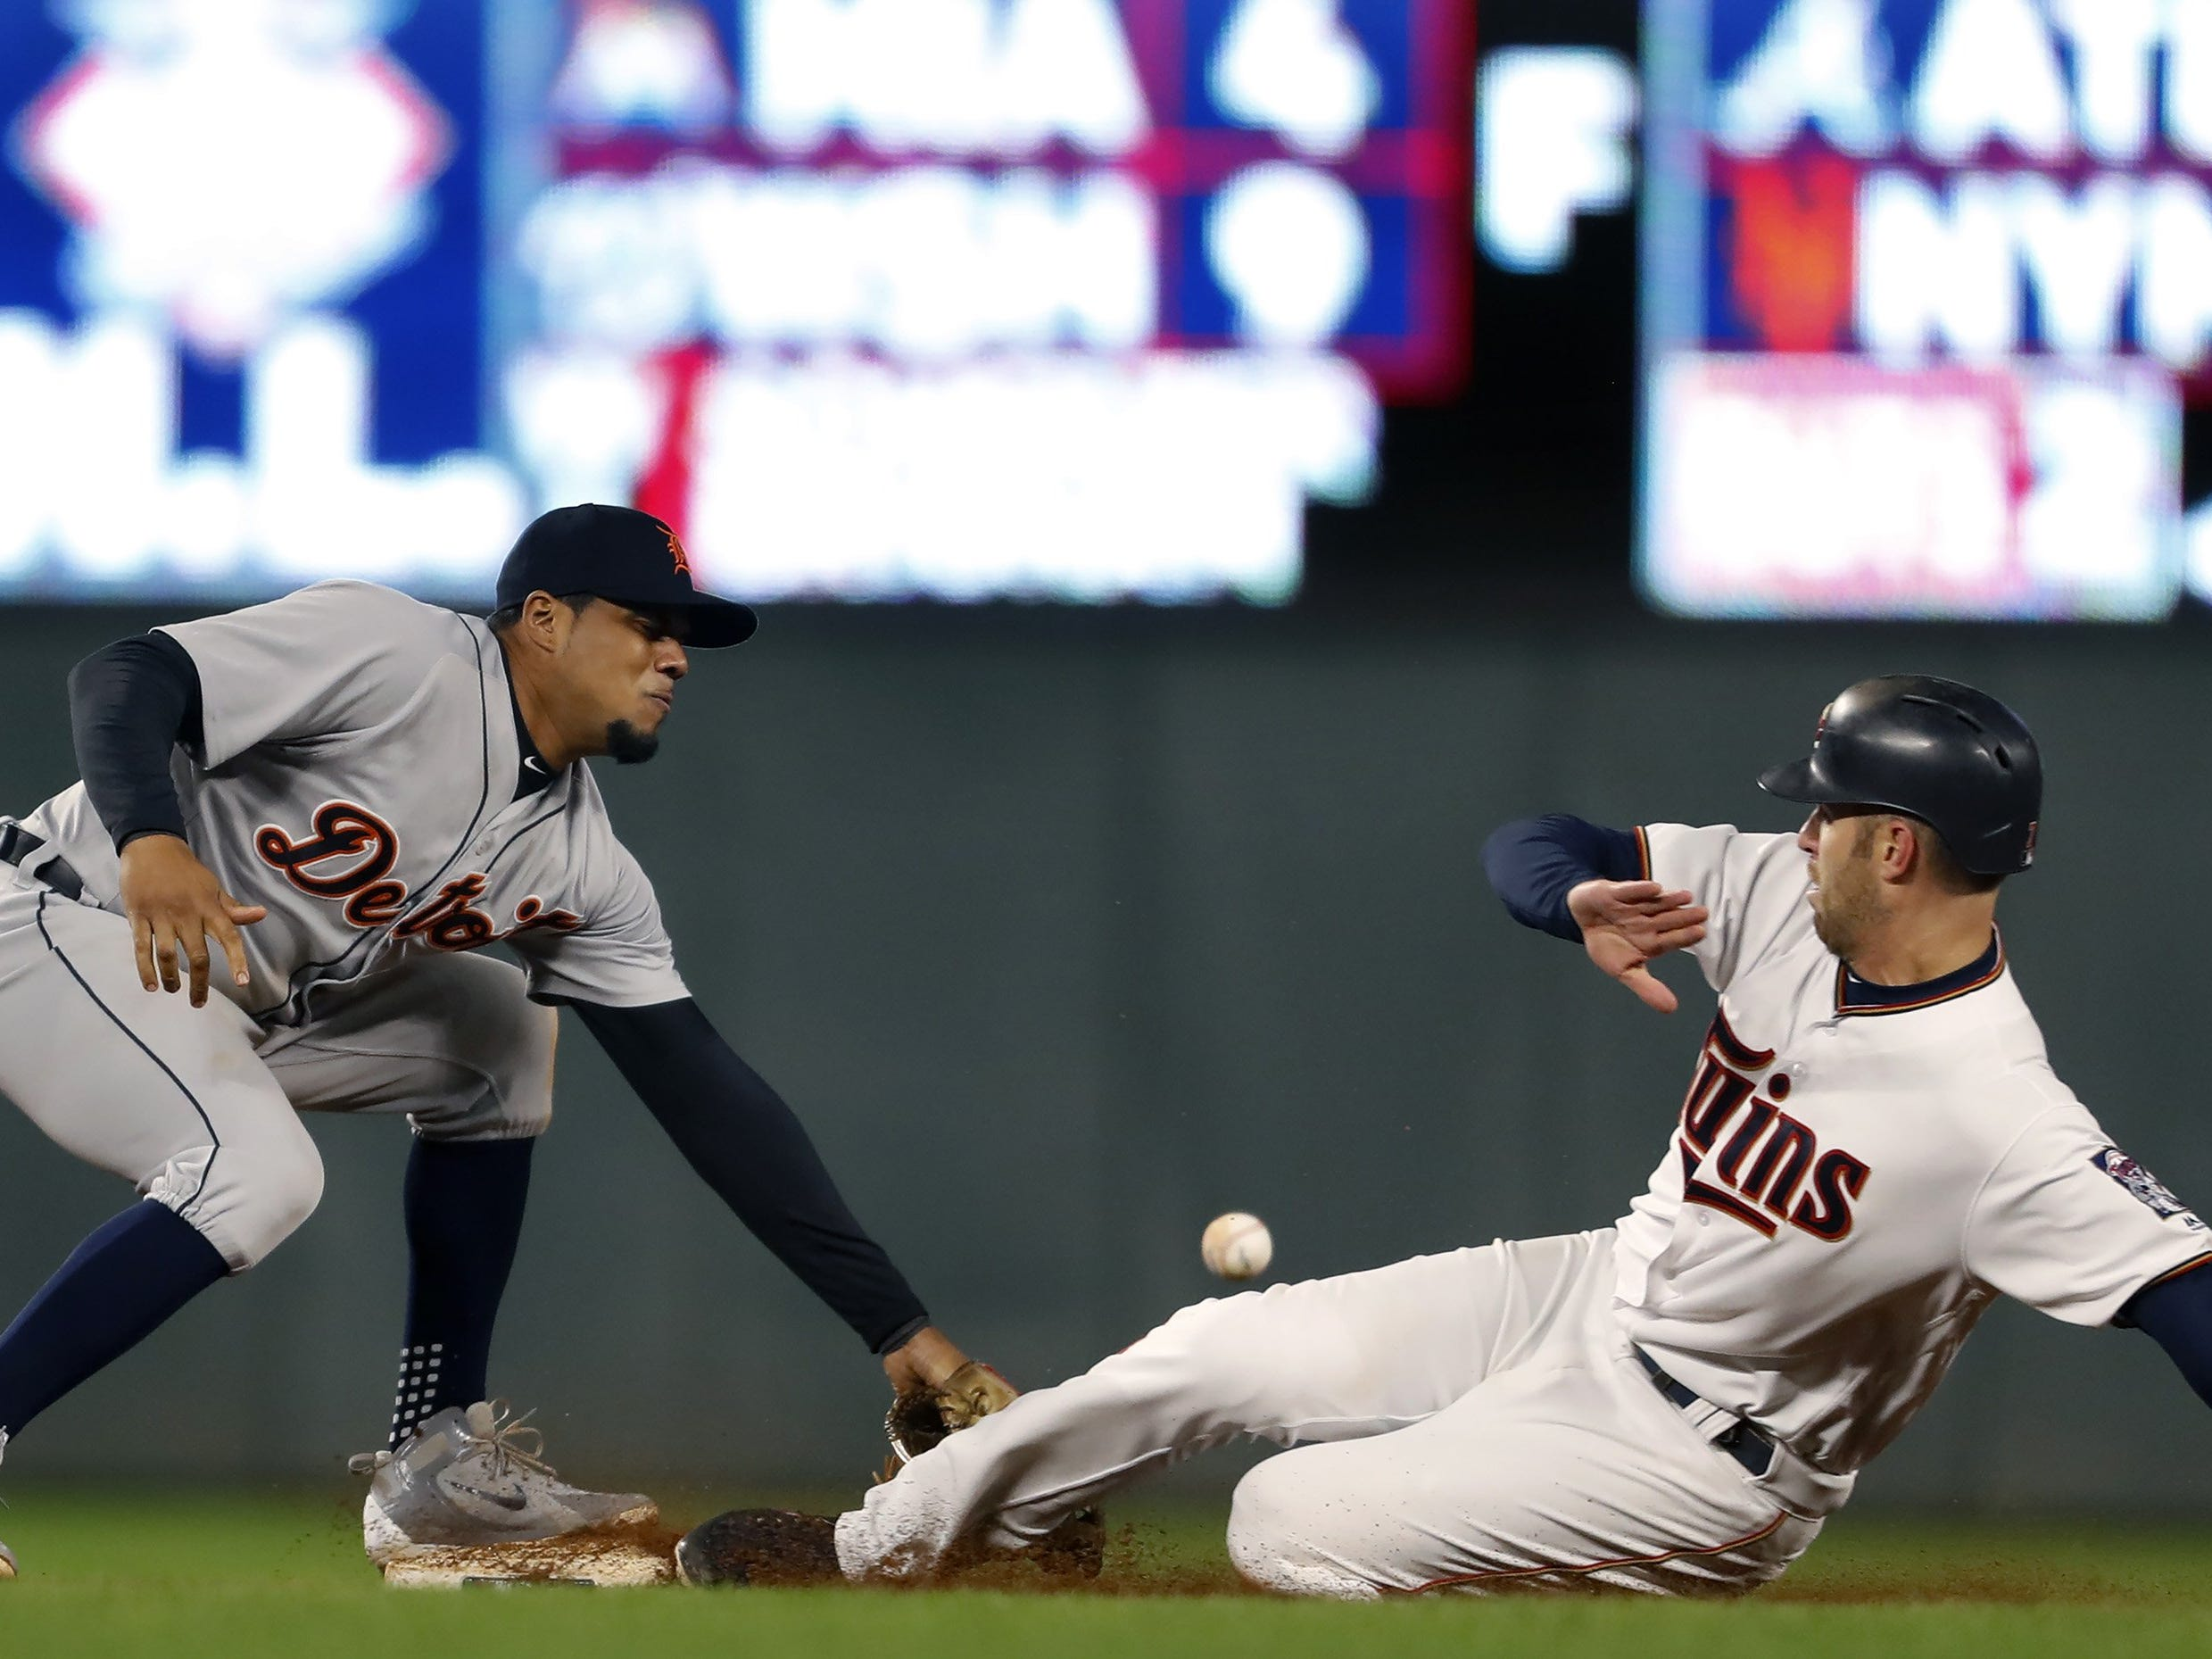 The Minnesota Twins' Joe Mauer, right, takes second base, then third base on a throwing error by Detroit Tigers catcher Joe McCann to infielder Jaime Candelario at Target Field in Minneapolis on Tuesday, Sept. 25, 2018. The Tigers won, 4-2.